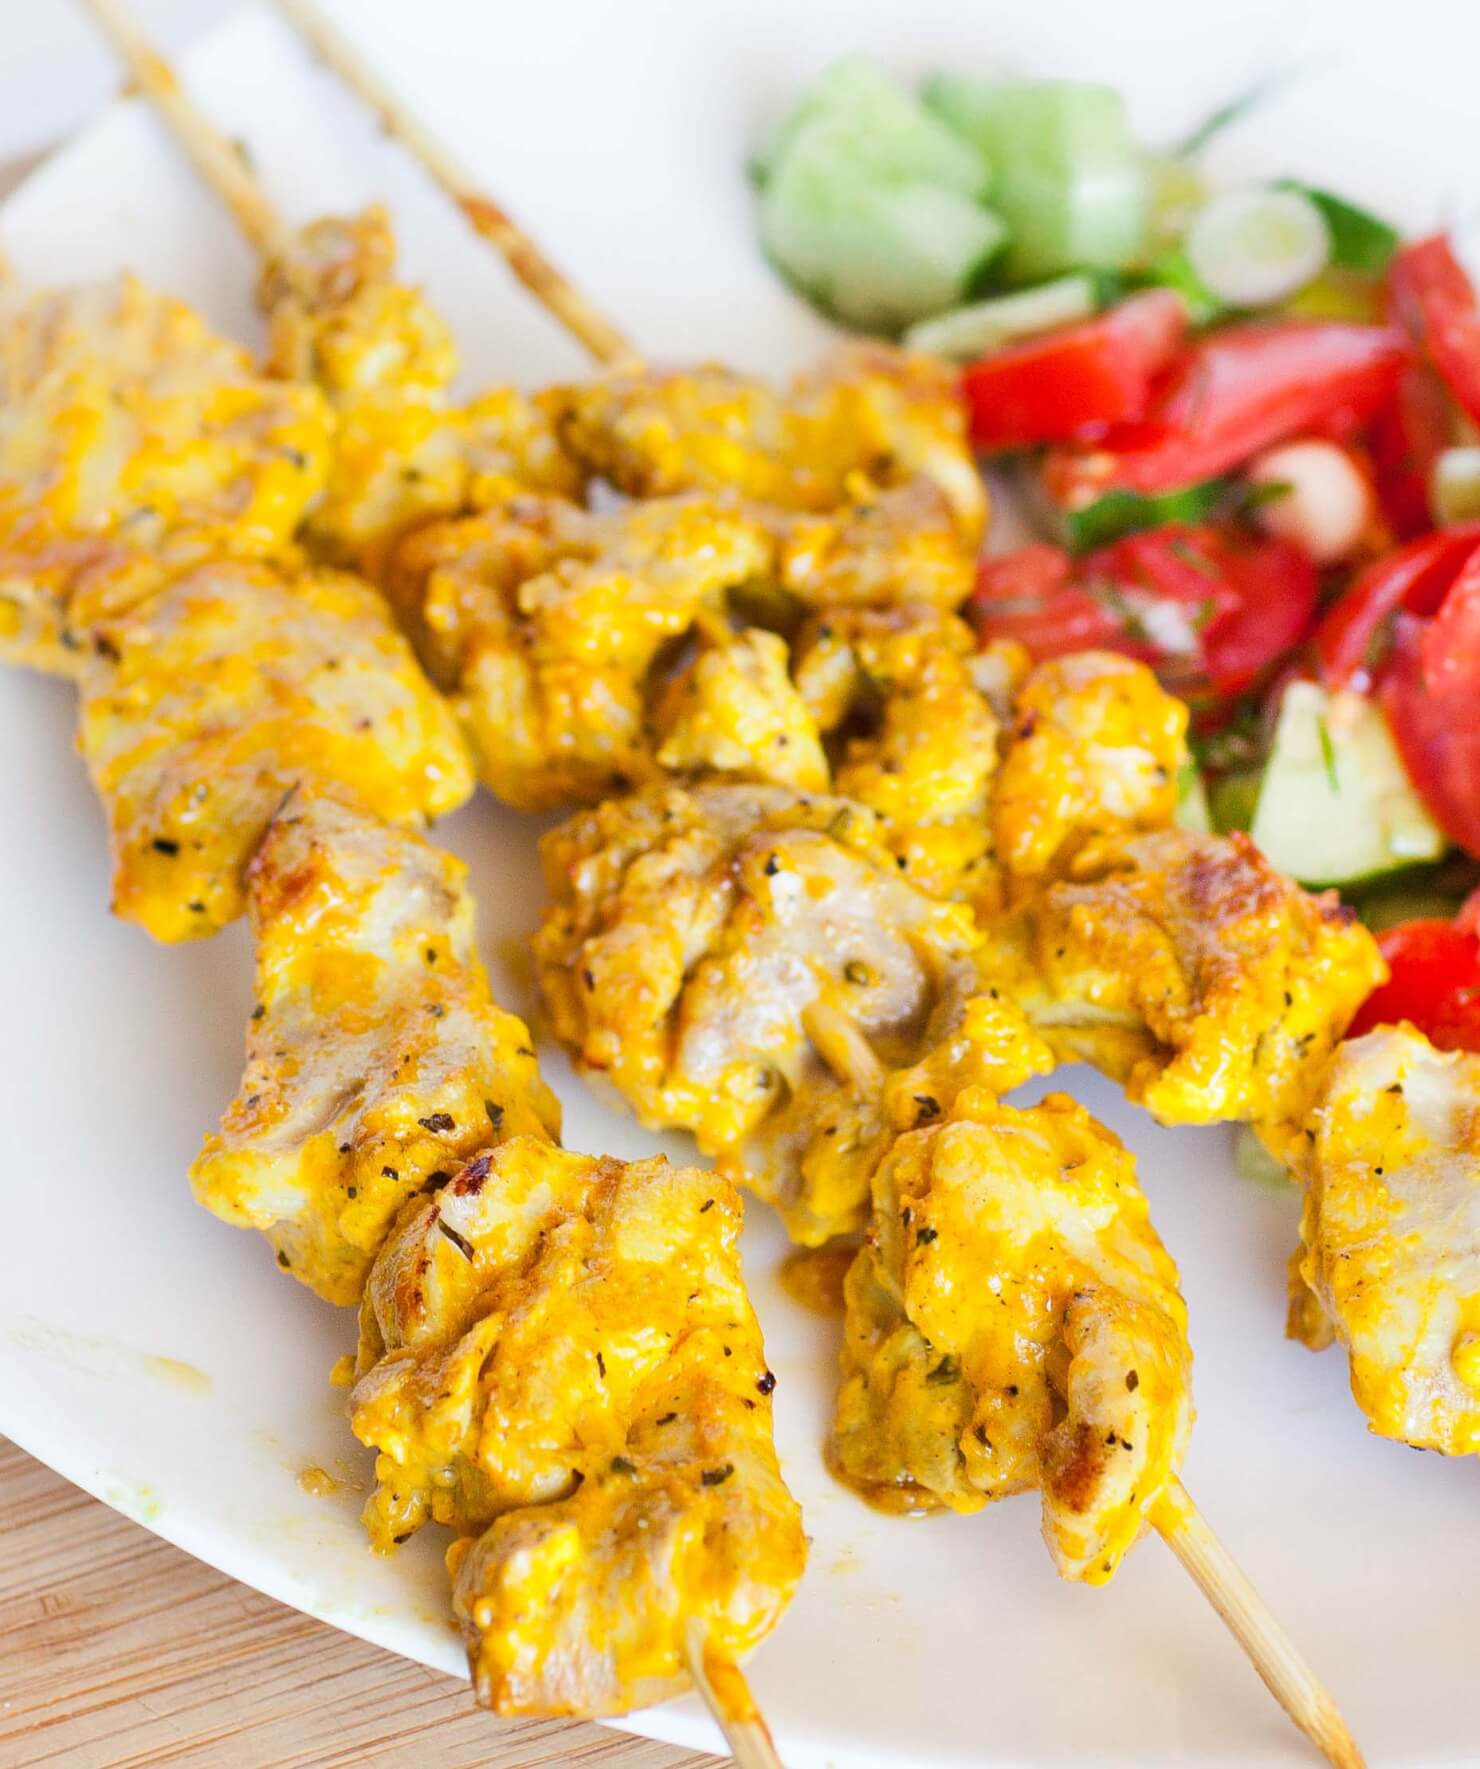 yogurt tumeric chicken kabobs